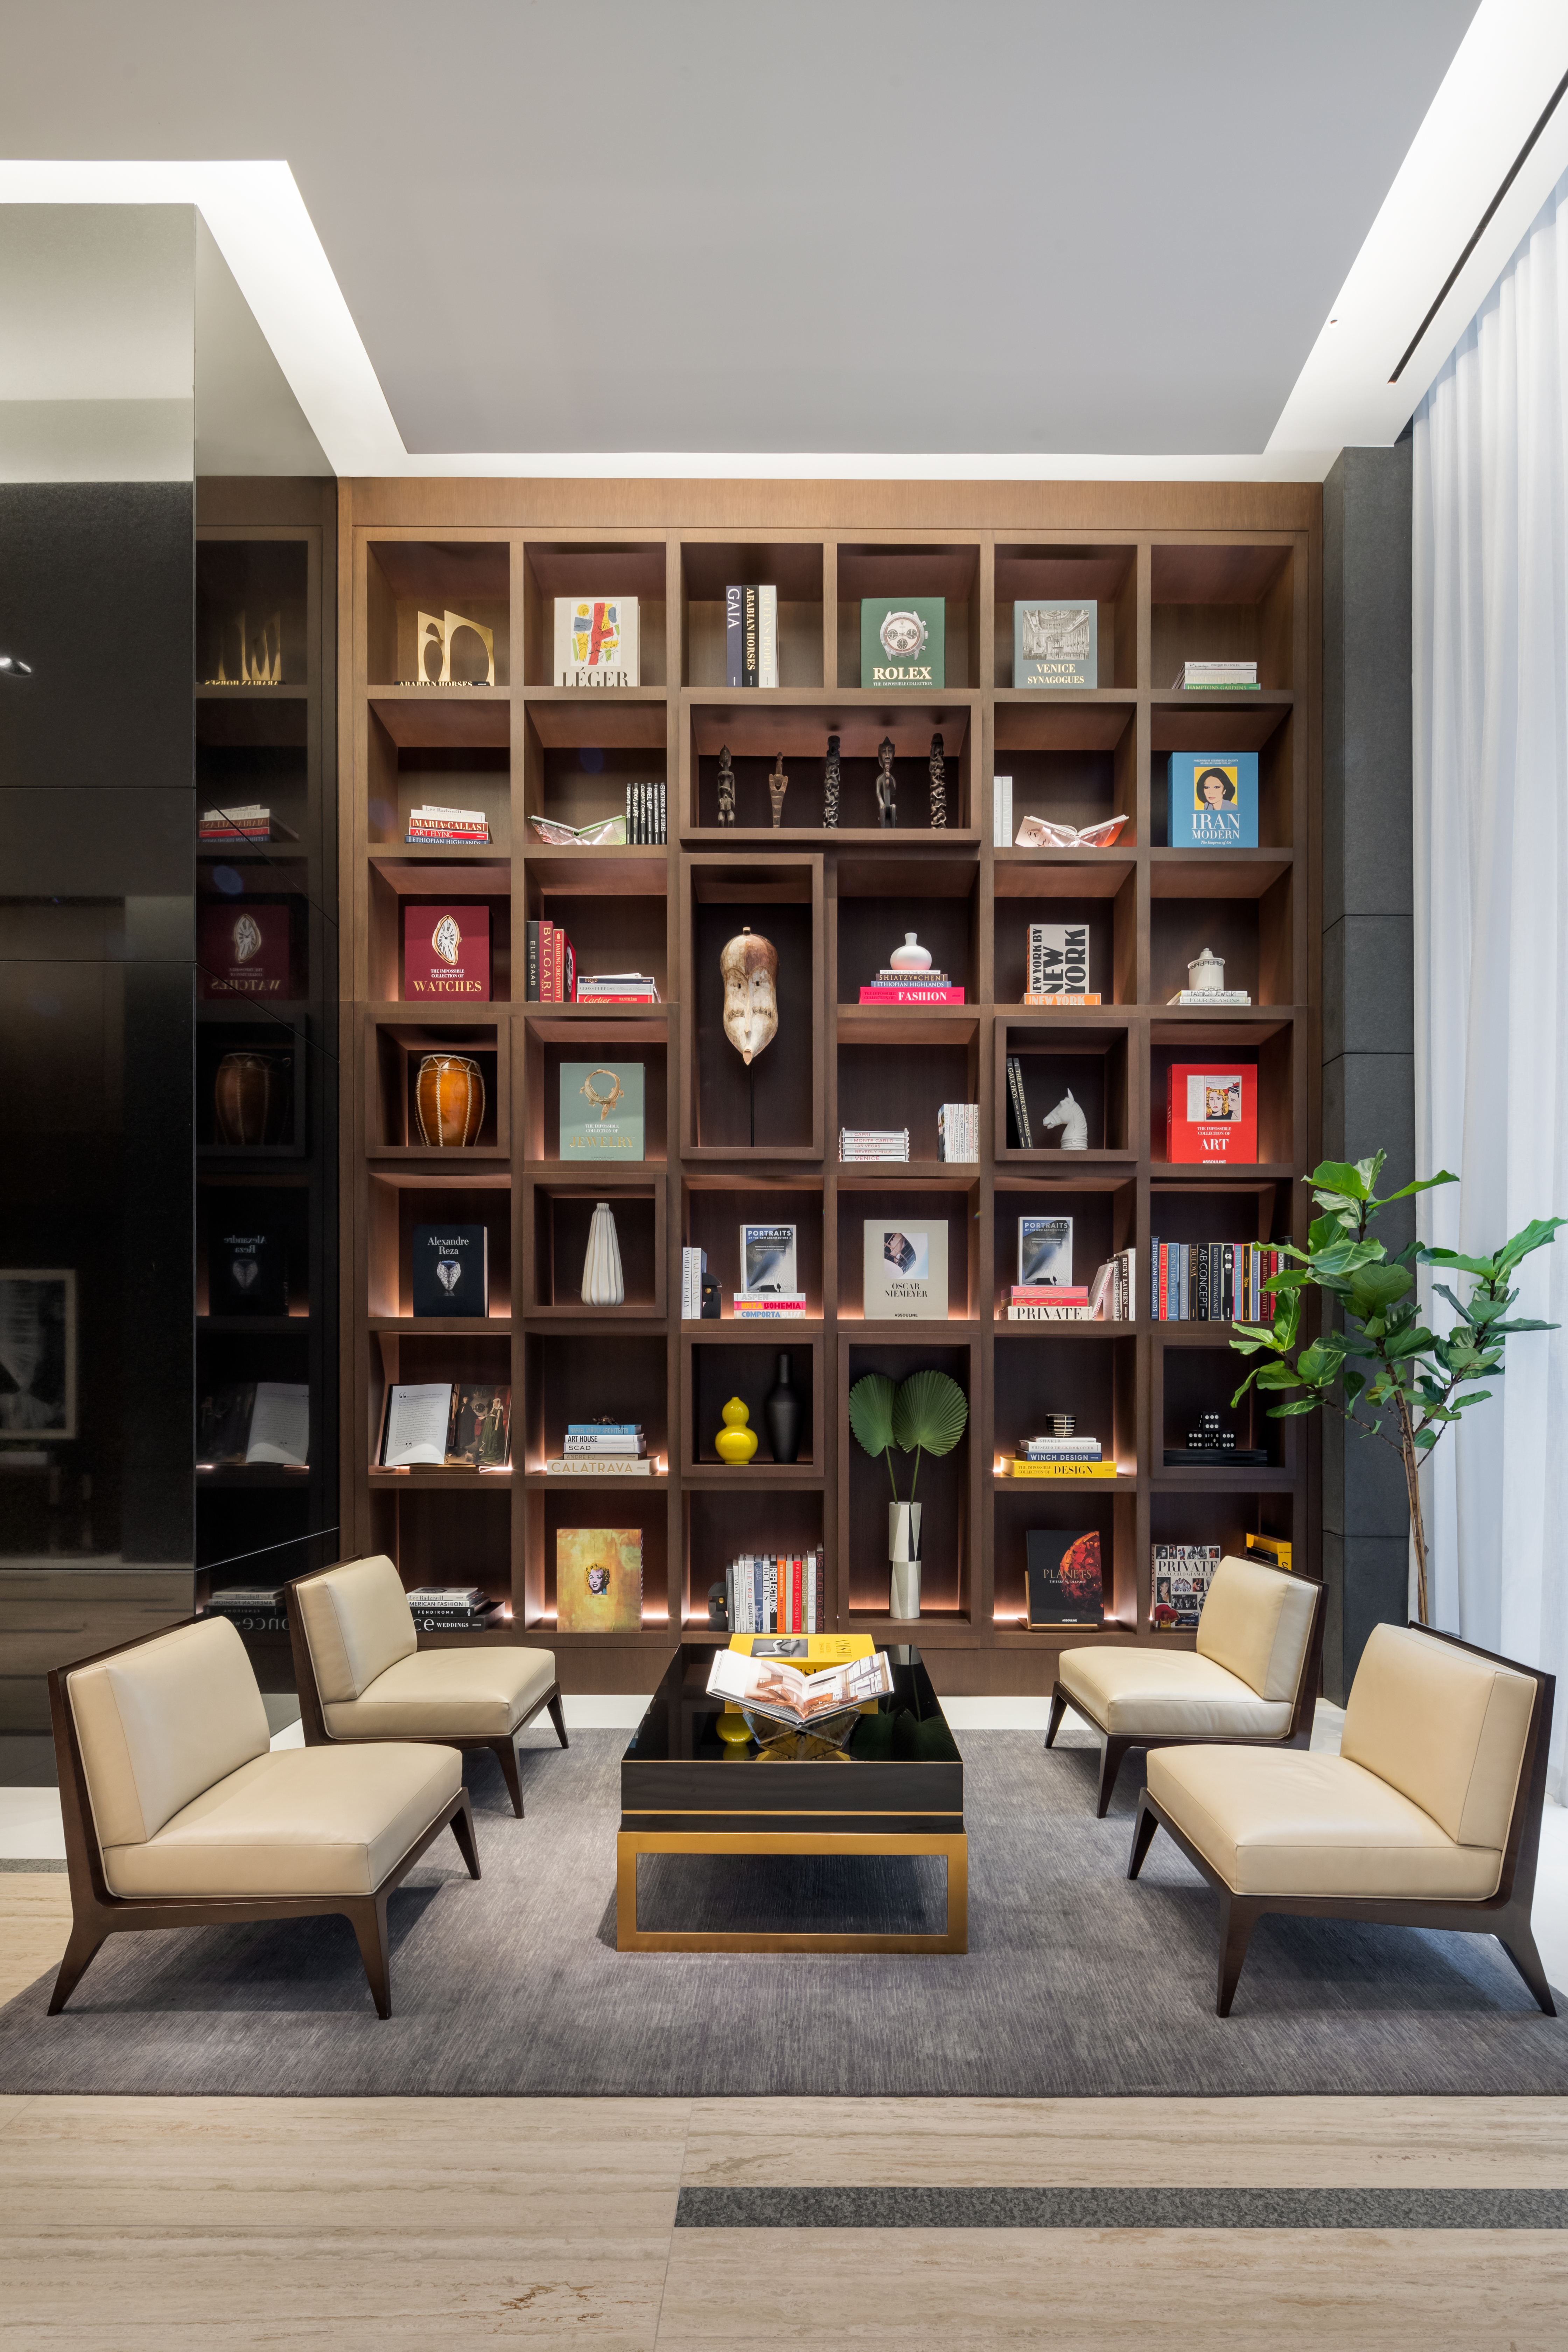 Show and tell: Haute storage comes to the fore in luxe interiors